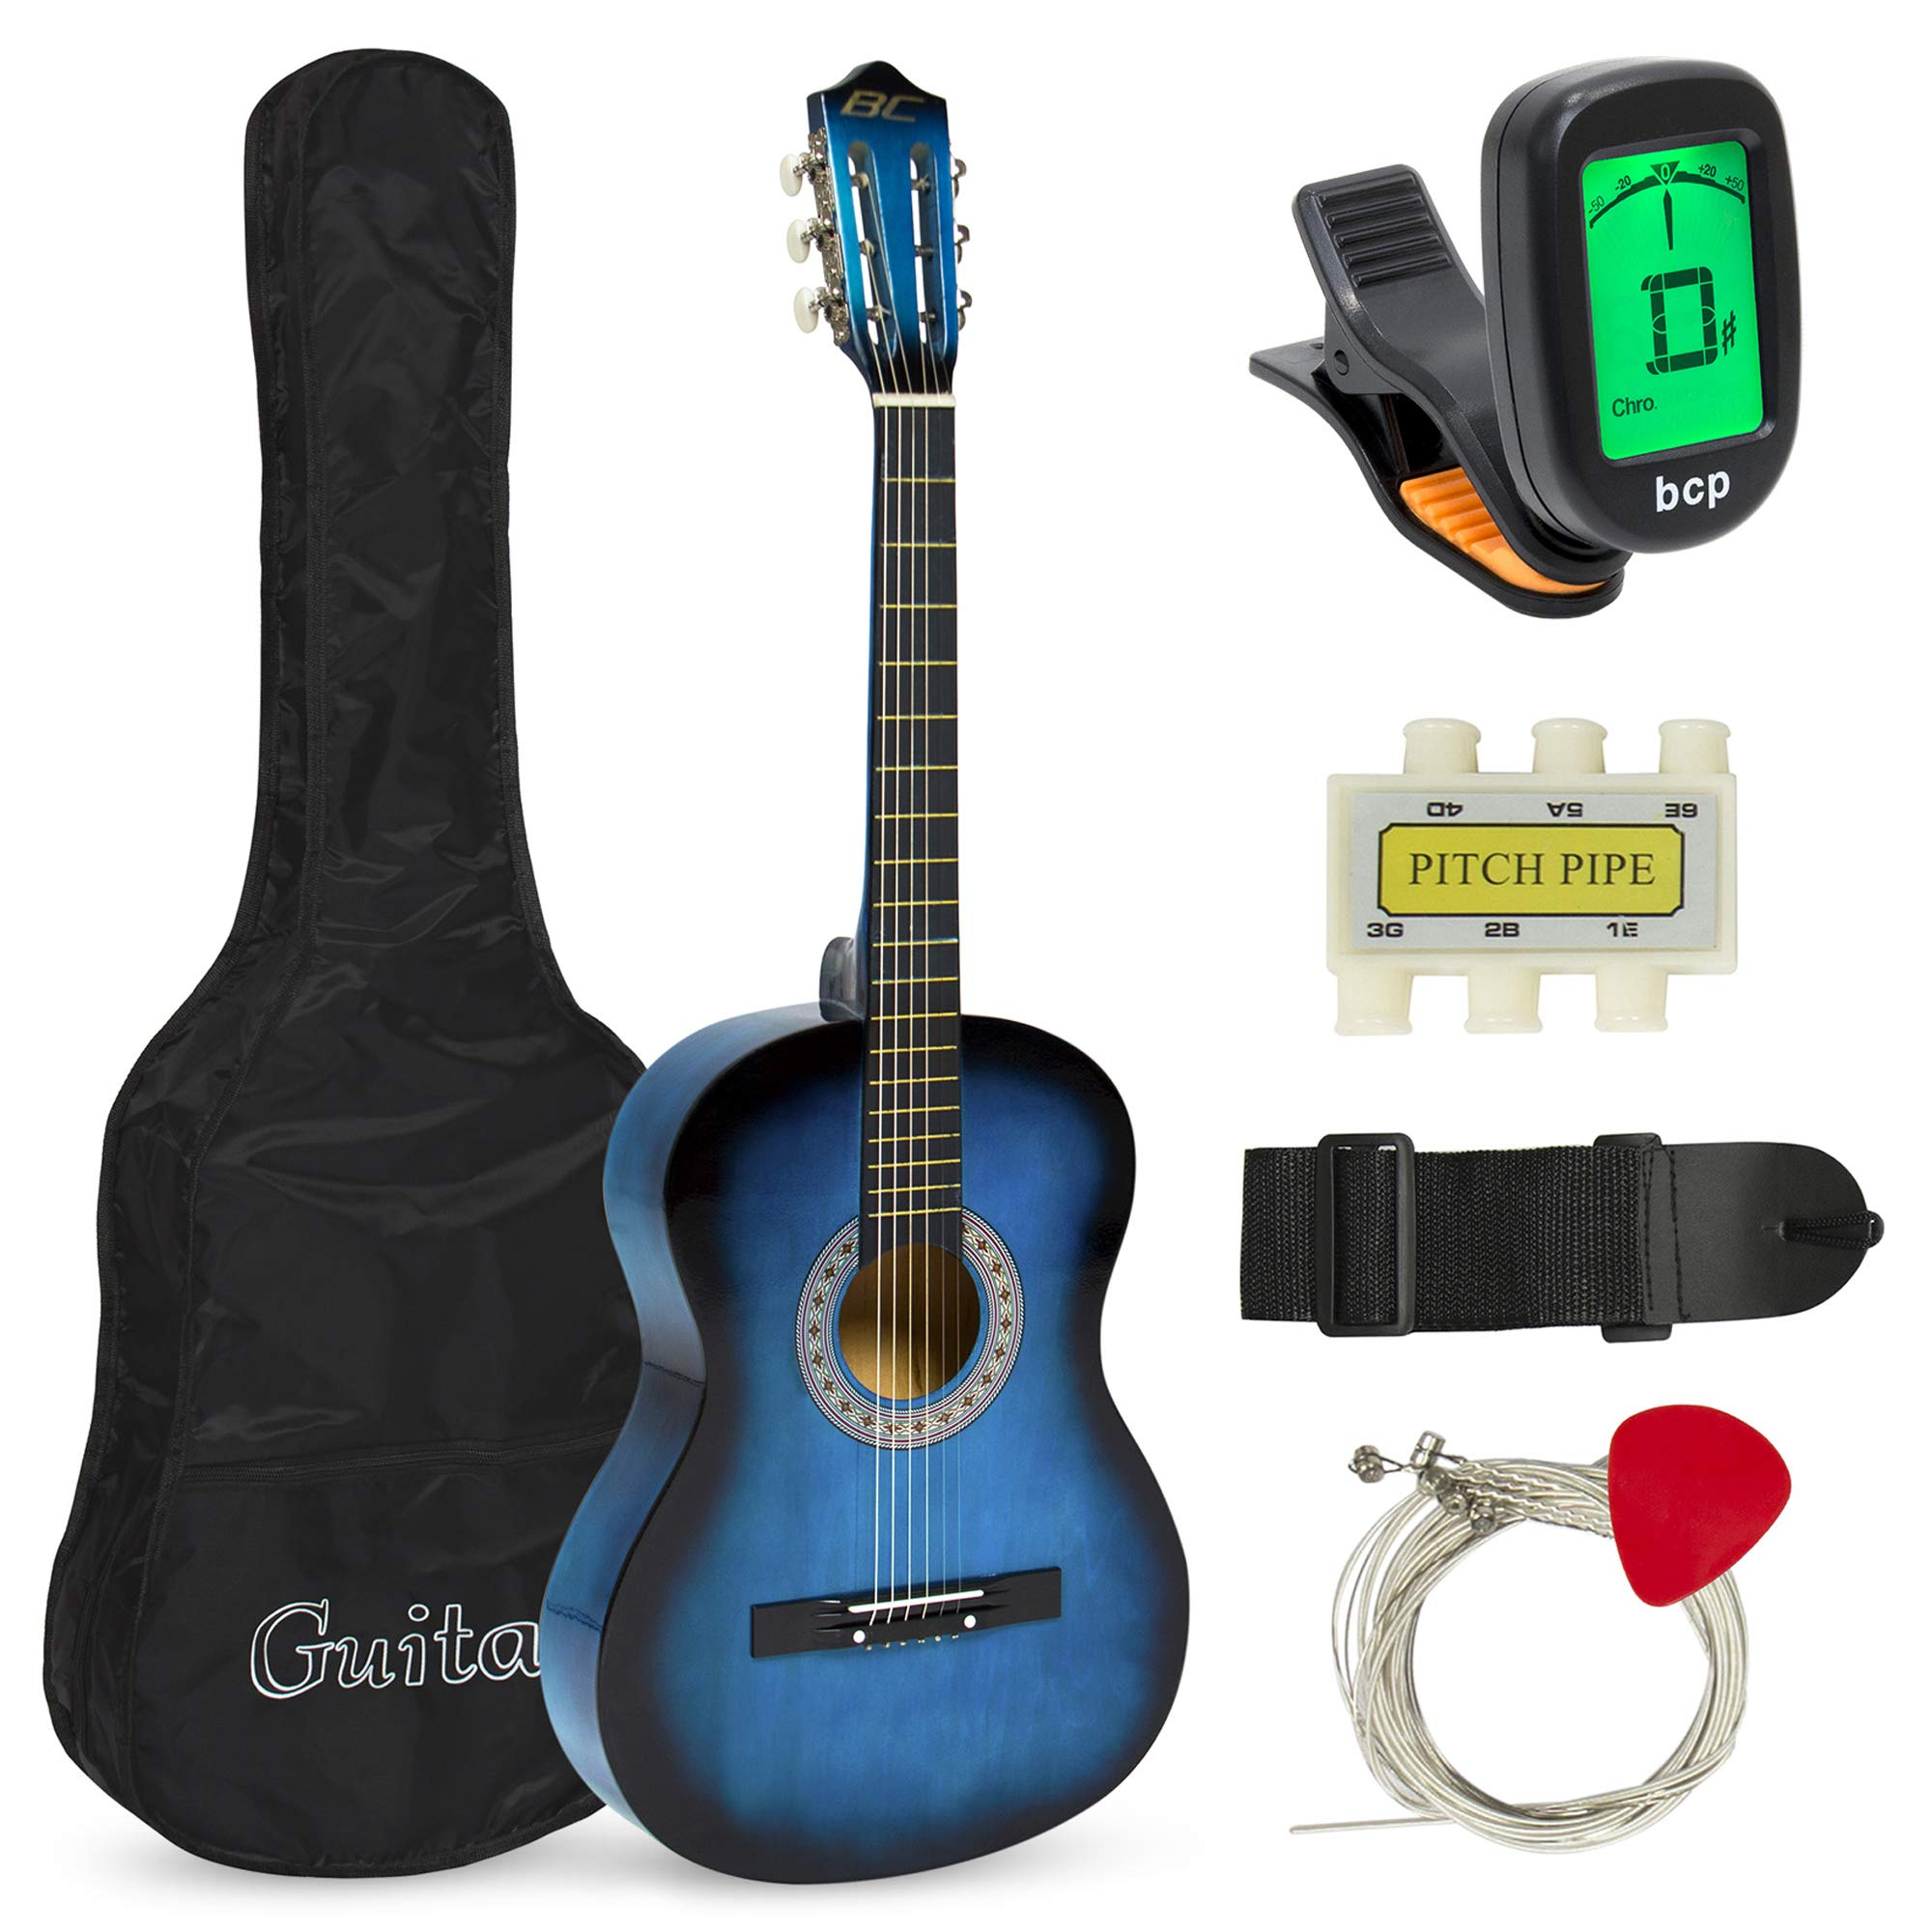 Best Choice Products 38in Beginner Acoustic Guitar Starter Kit w/ Case, Strap, Digital E-Tuner, Pick, Pitch Pipe, Strings - Blue by Best Choice Products